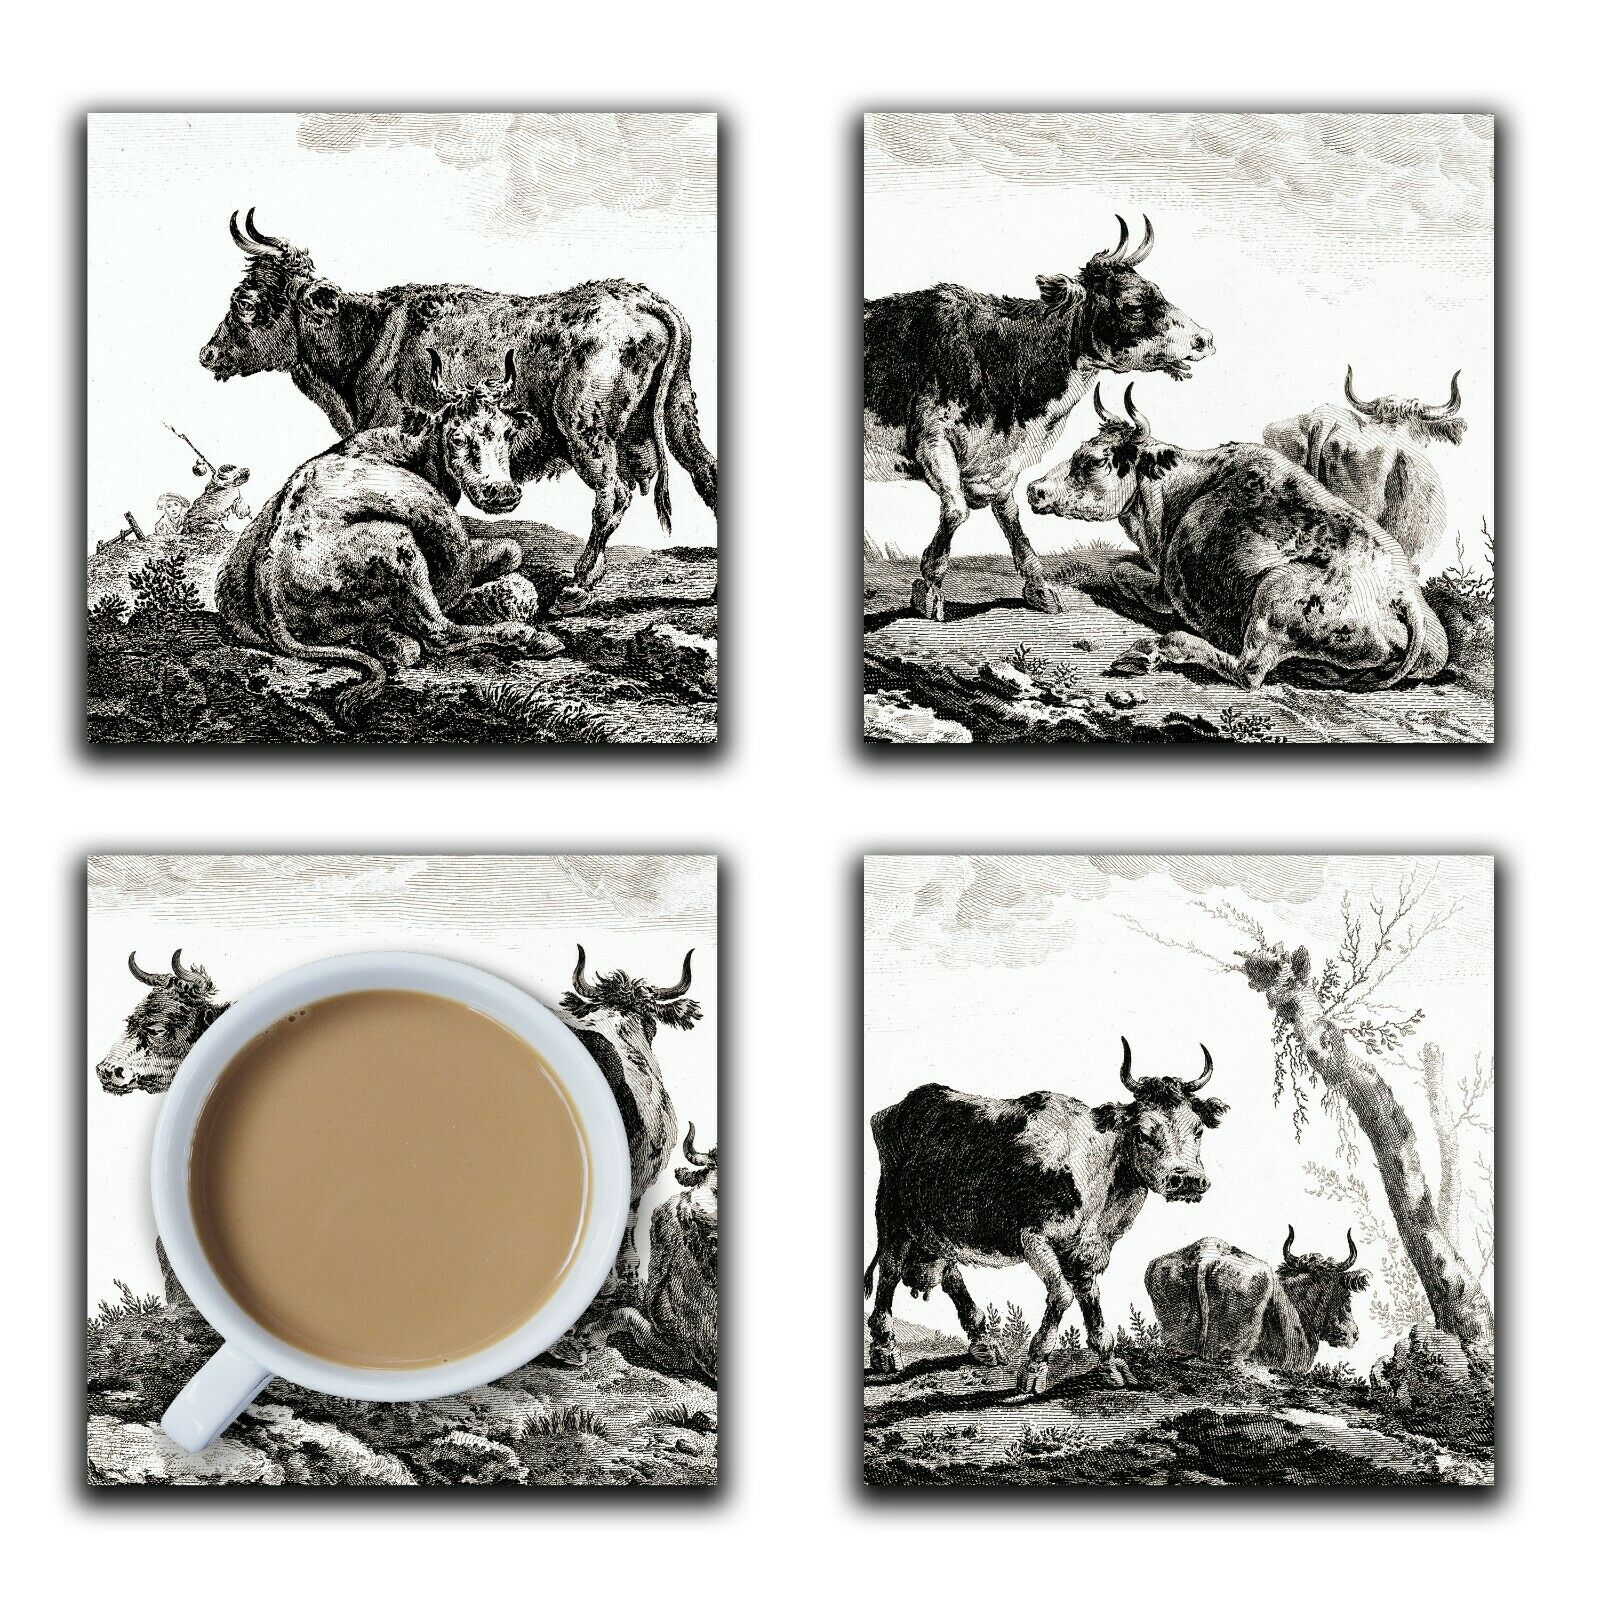 Embossi Printed French Pastoral Cows Black & White, wood or ceramic tile, set of 4